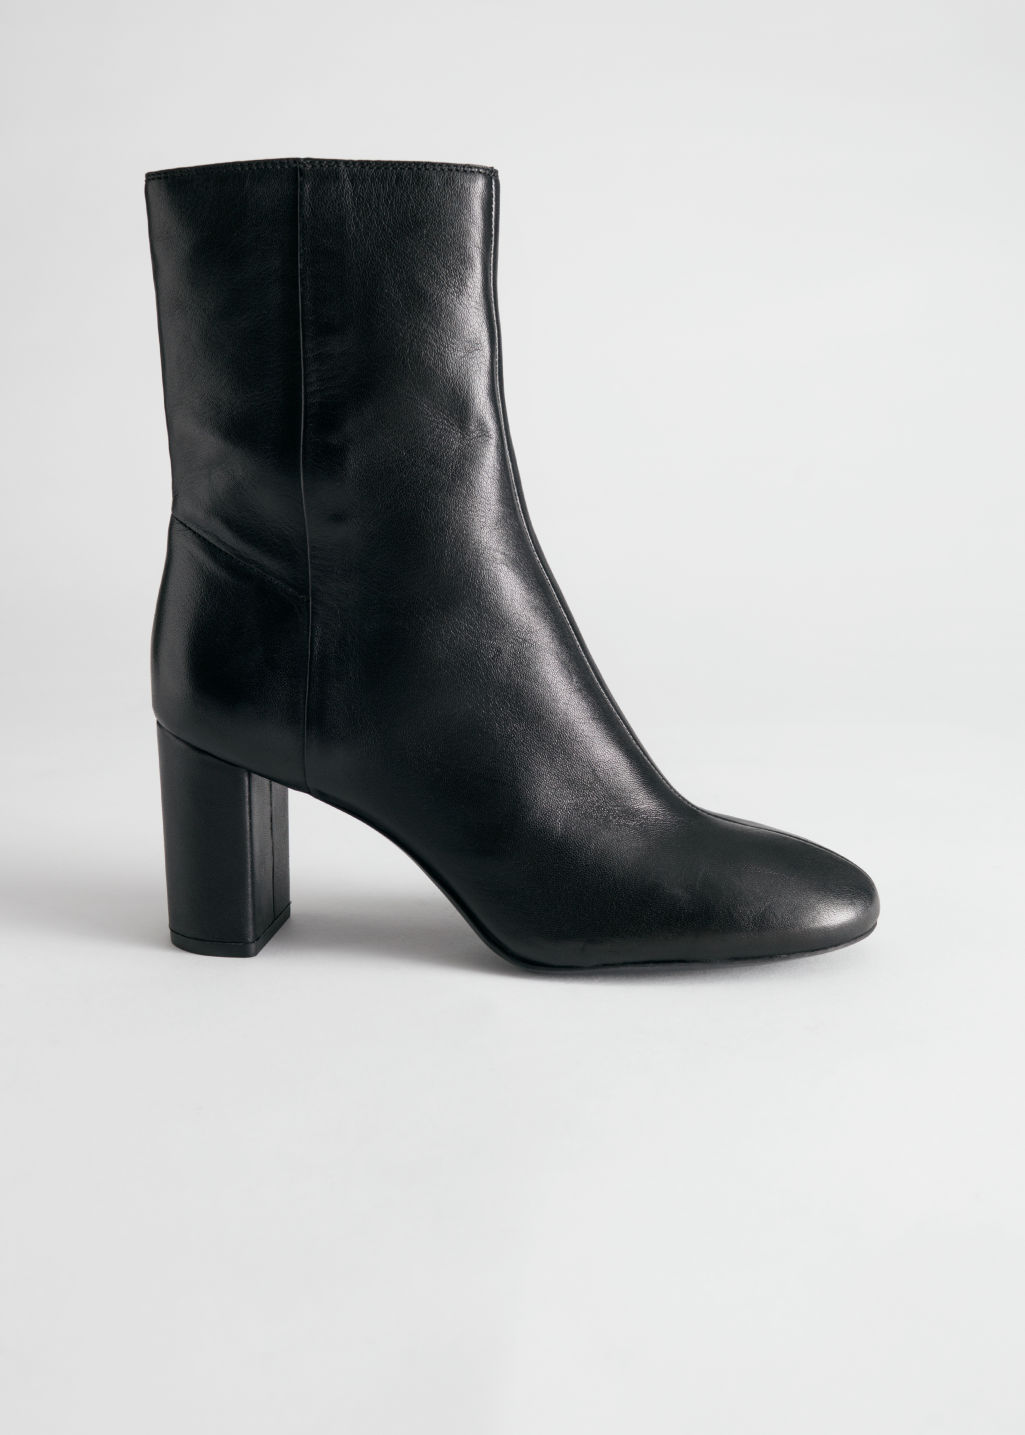 StillLife Side Image of Stories Smooth Leather Block Heel Boots in Black